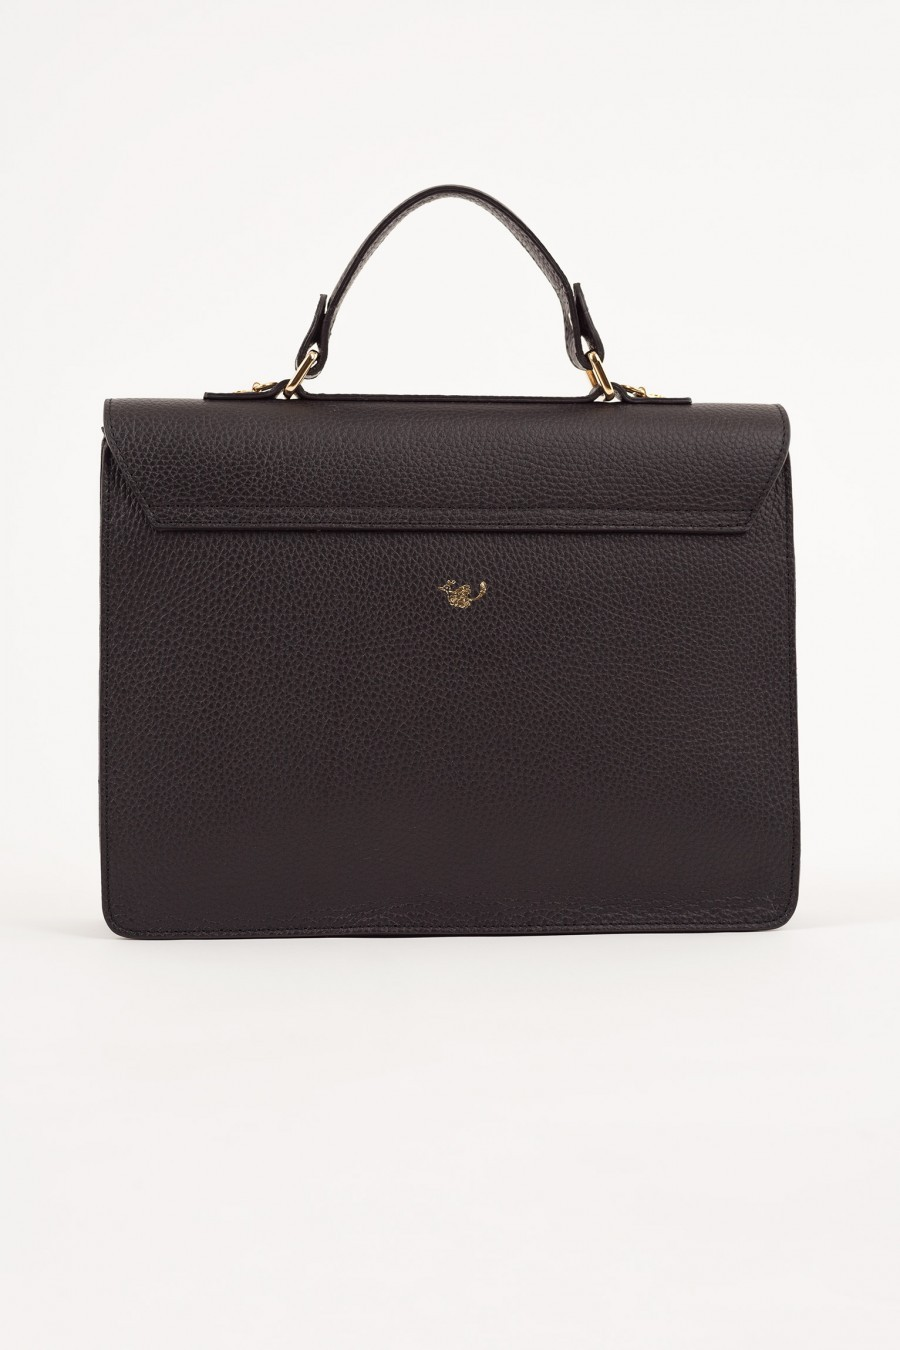 lazzari satchel